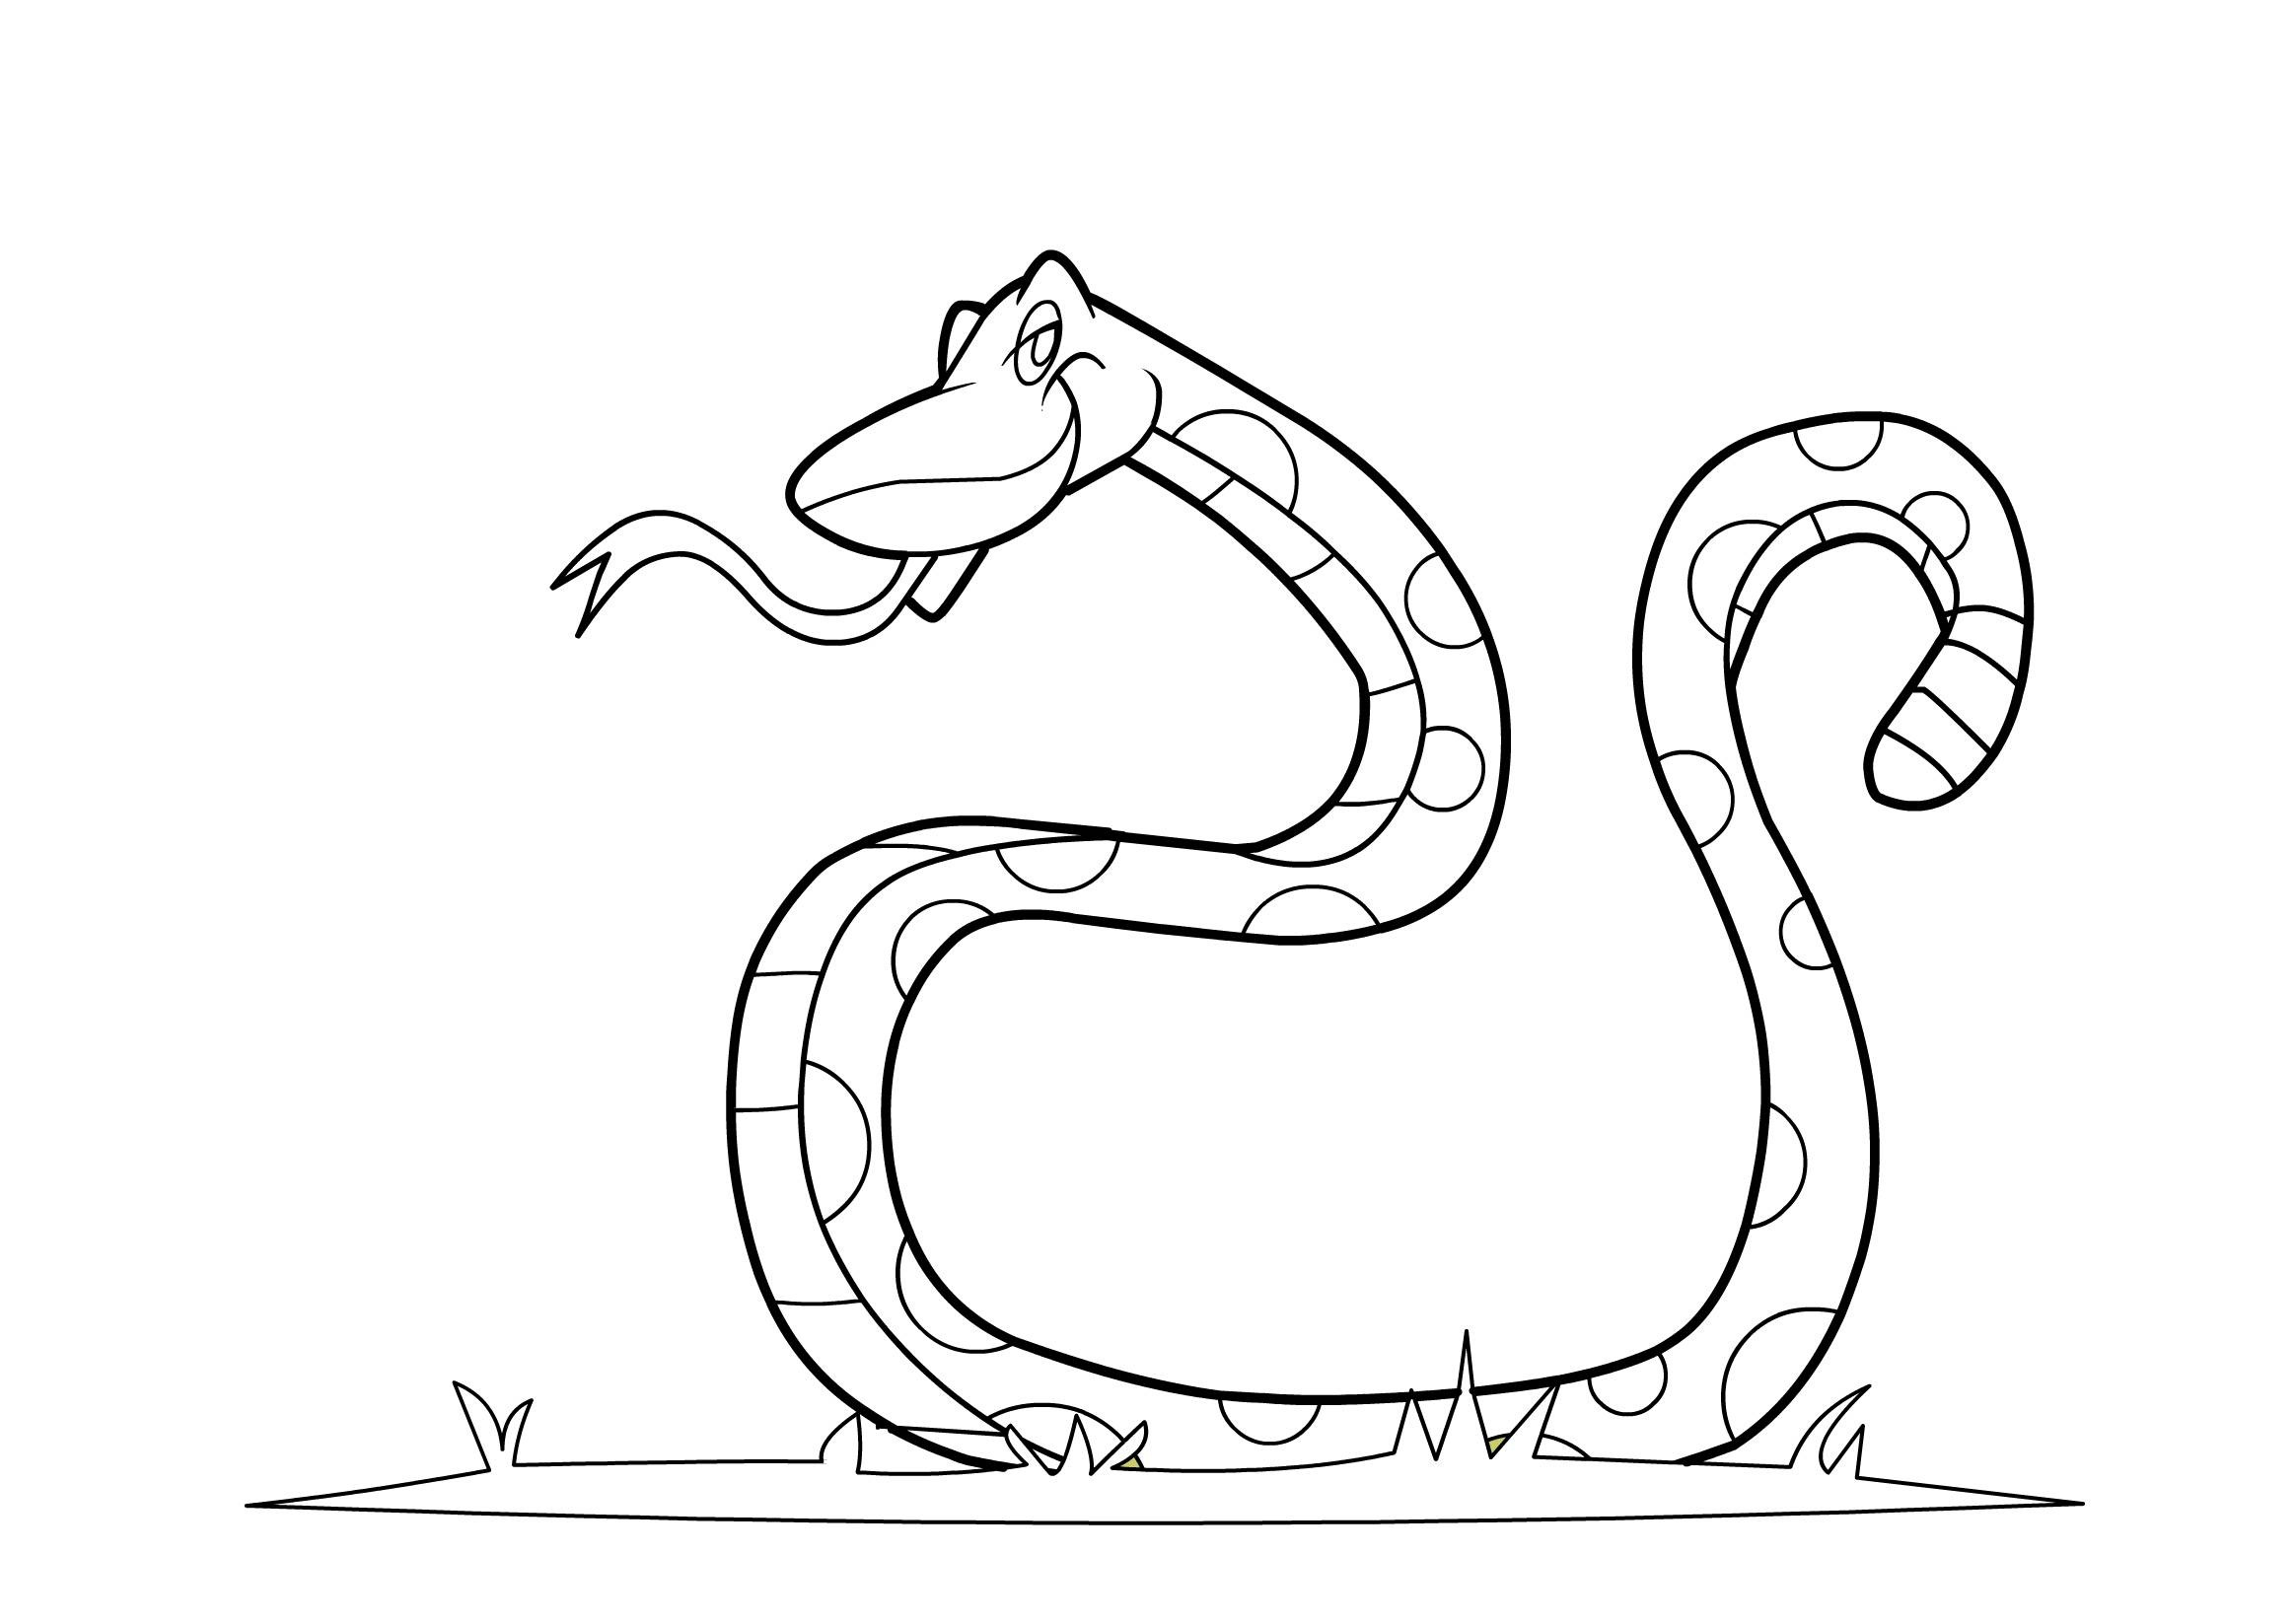 coloring pages of kids - free printable snake coloring pages for kids